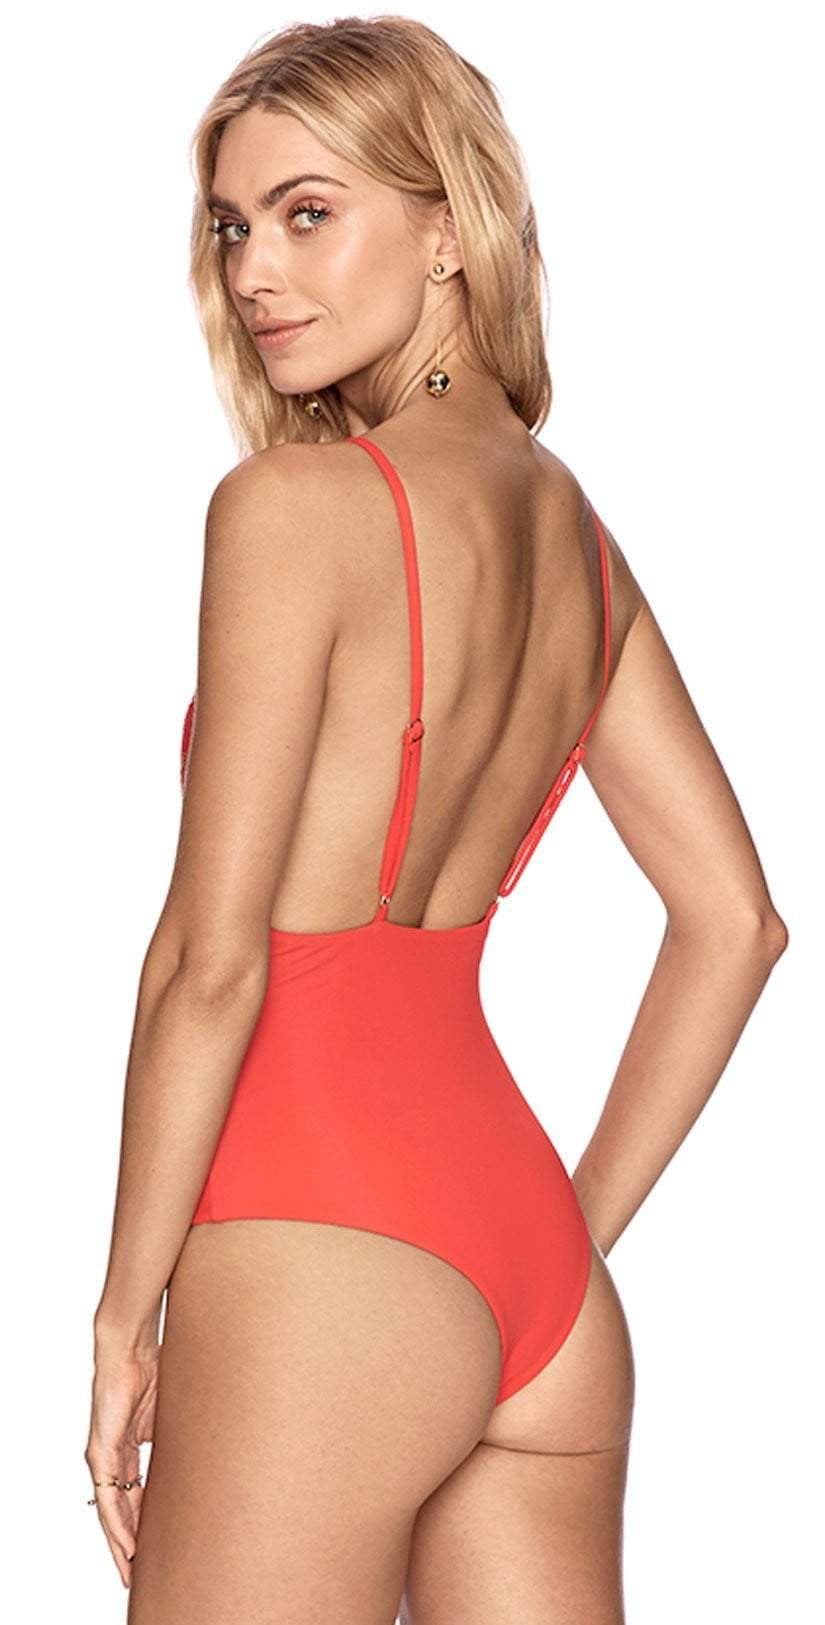 Beach Riot Bridget One Piece In Red DFALOP3-RED: